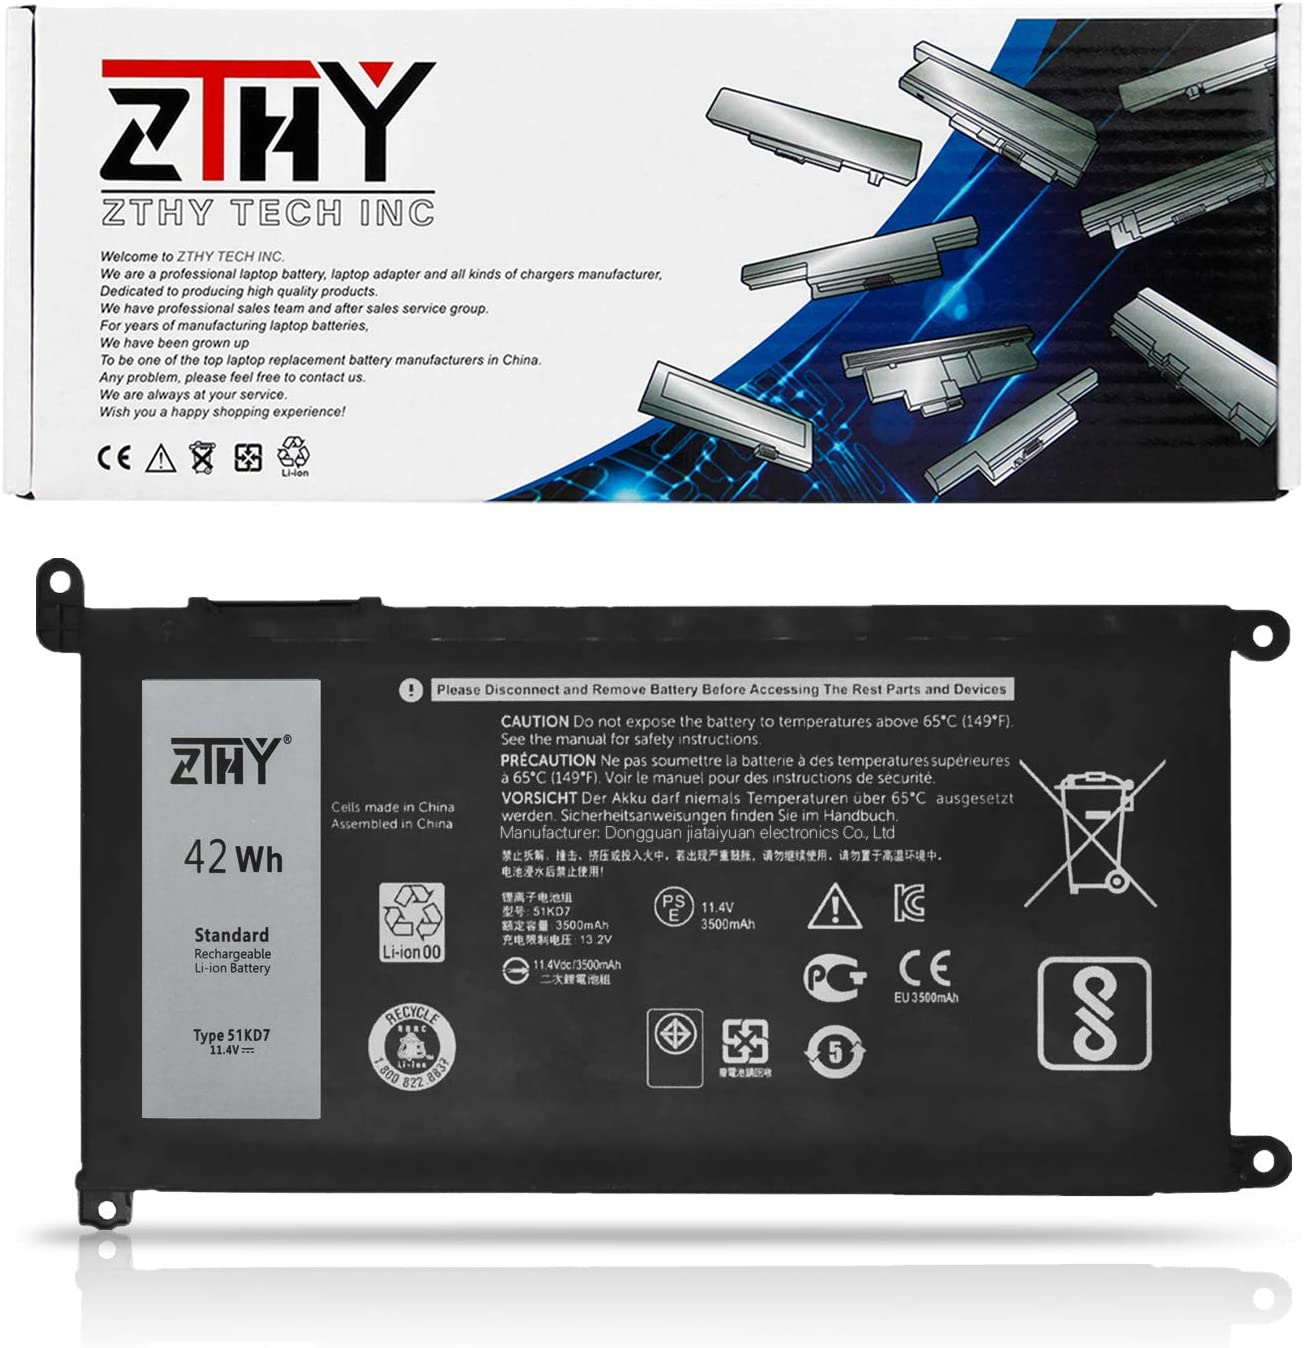 ZTHY 51KD7 Laptop Battery Replacement for Dell Chromebook 11 3180 3189 5190 3181 2-in-1 Series P28T001 Y07HK FY8XM 0FY8XM 11.4V 42Wh 3-Cell 3500mAh